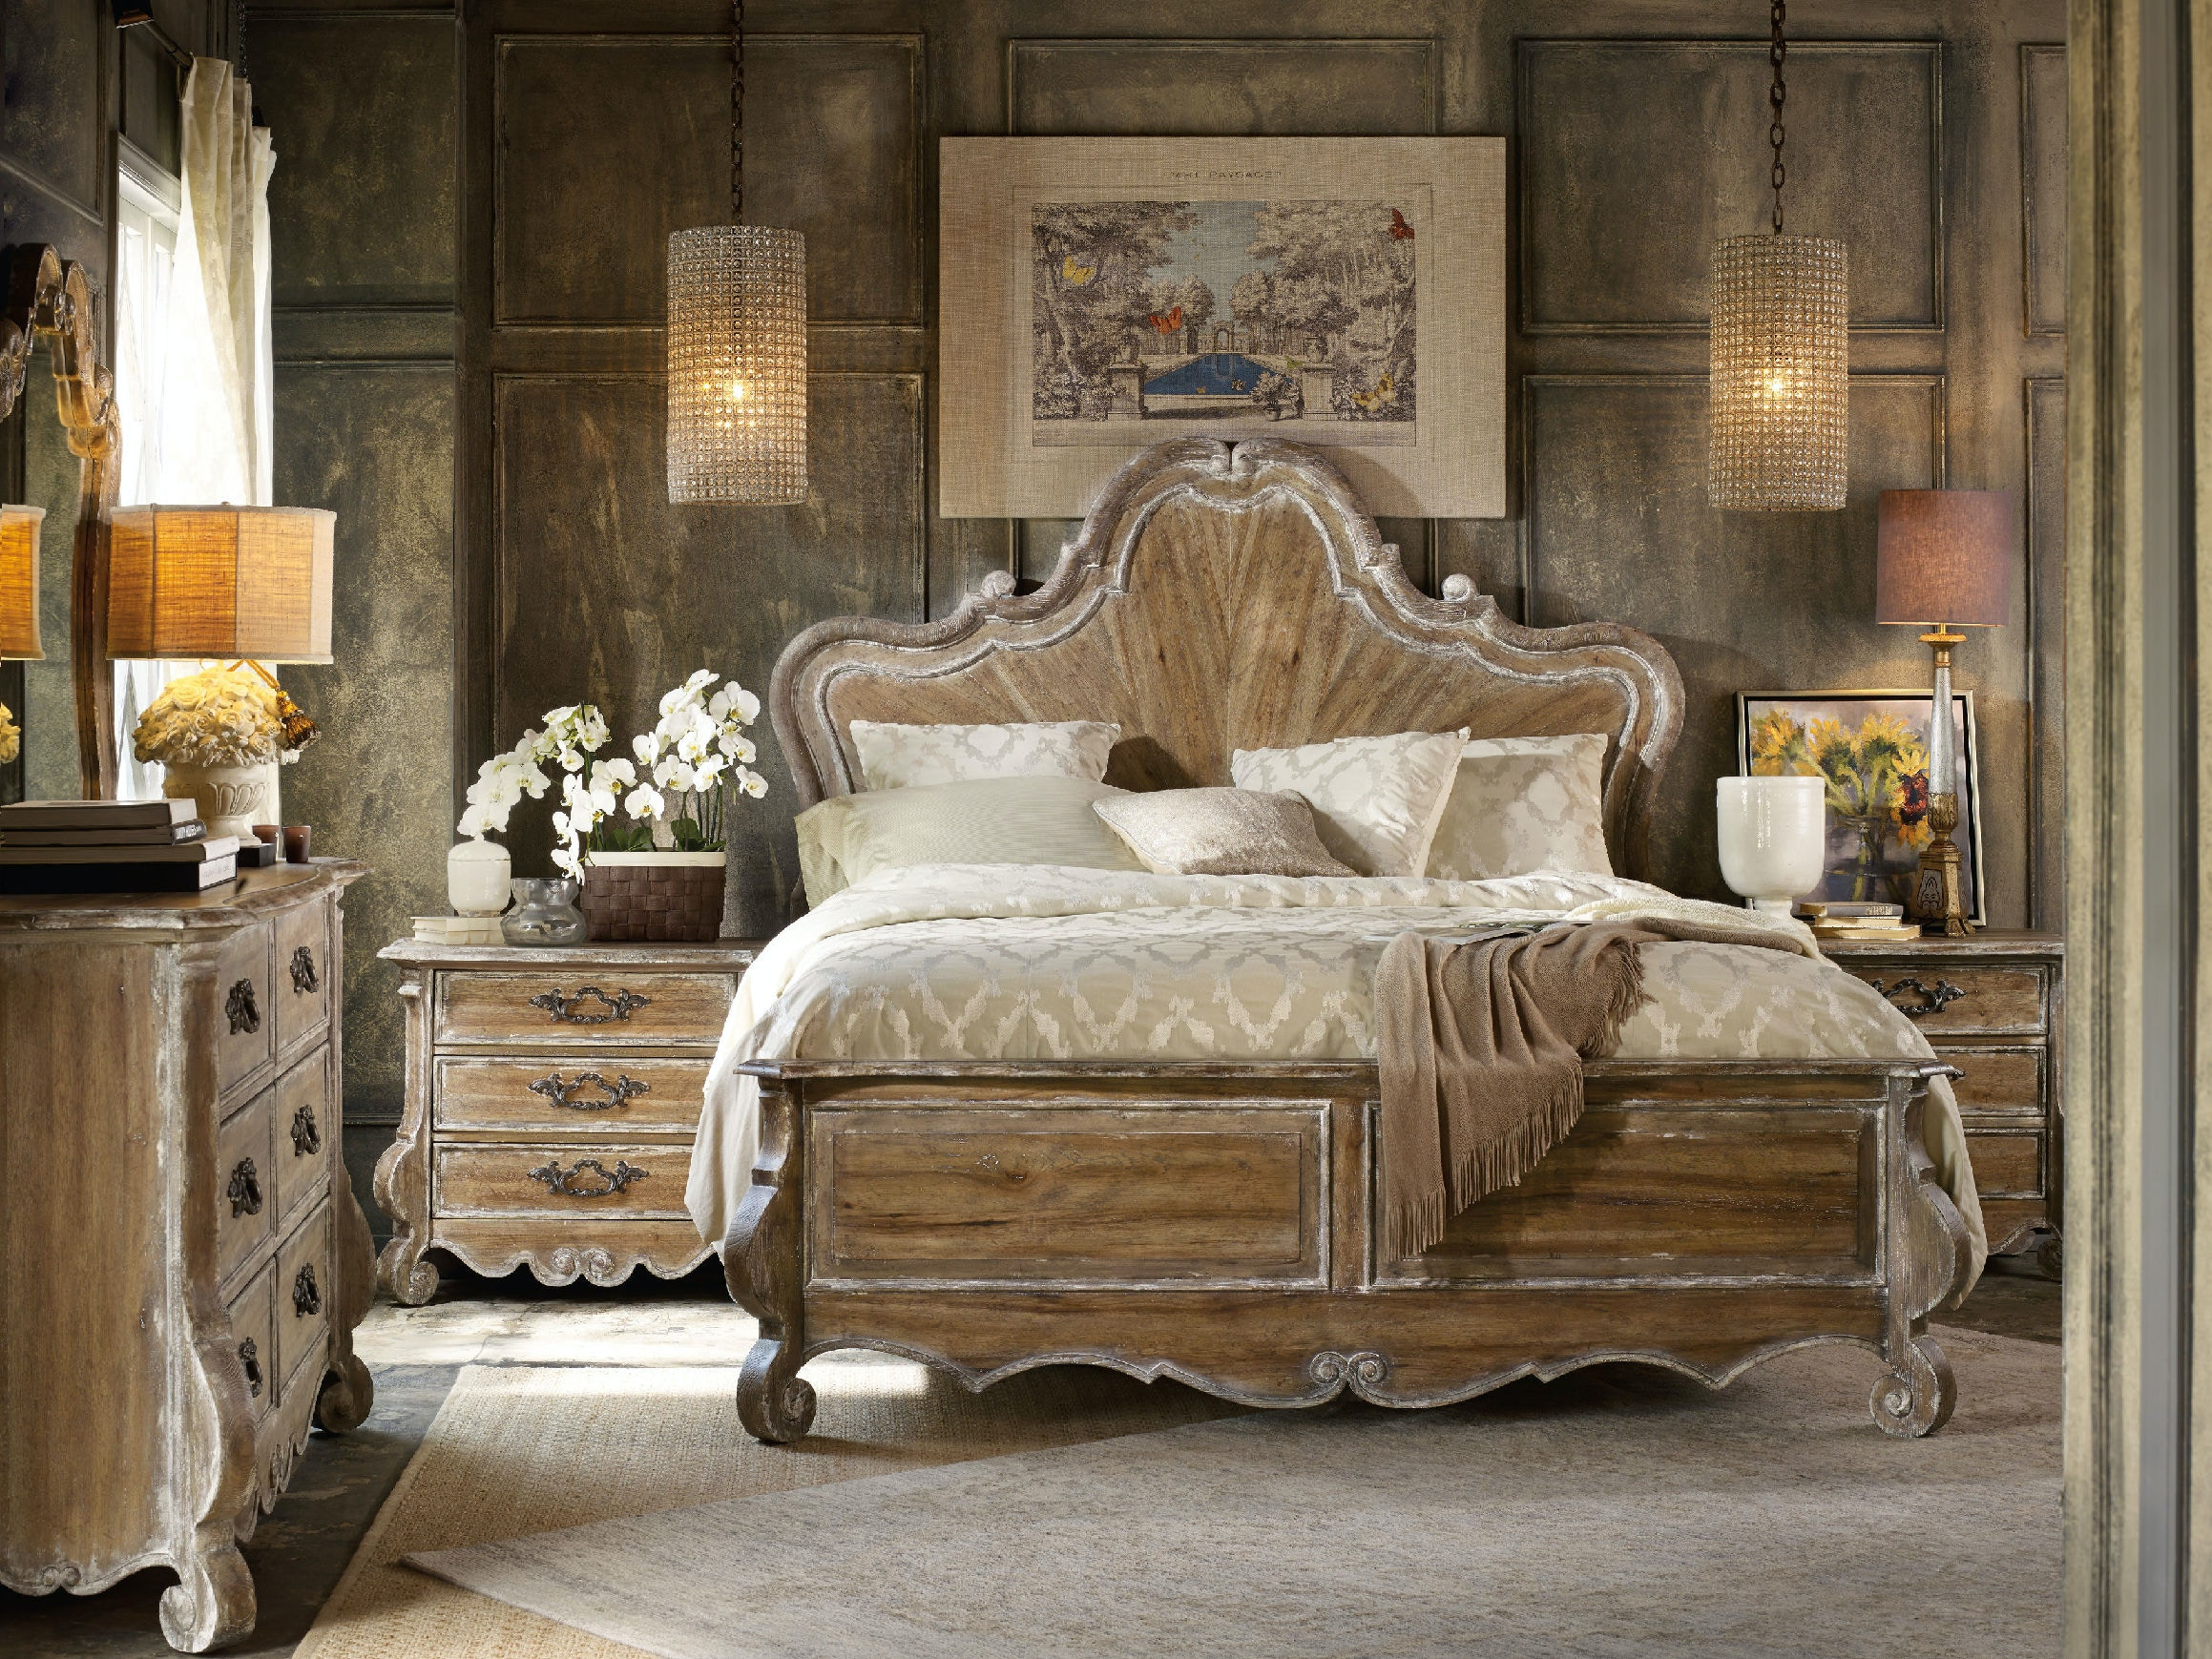 Hooker furniture bedroom chatelet king wood panel bed 5300 for Hooker bedroom furniture